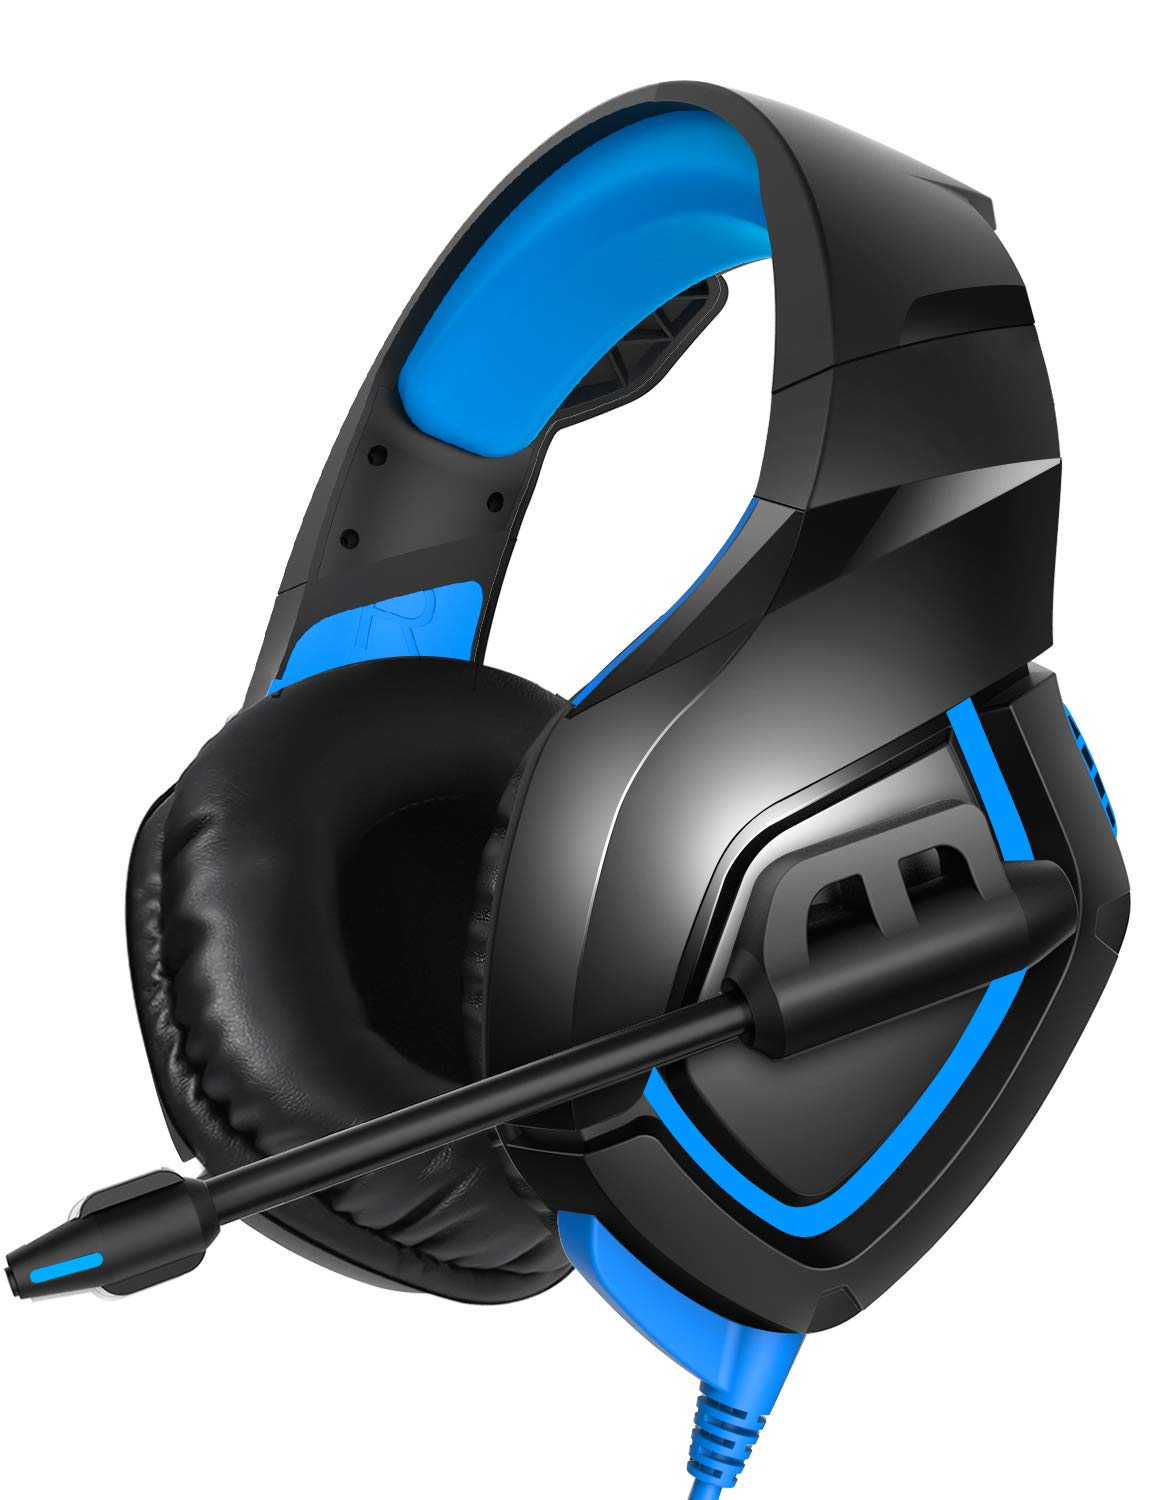 RUNMUS Gaming Headset PS4 Headset with 7.1 Surround Sound Stereo, Xbox One Headset with Noise Canceling Mic, Compatible with PC, PS4, Xbox One Controller Adapter Needed , NS